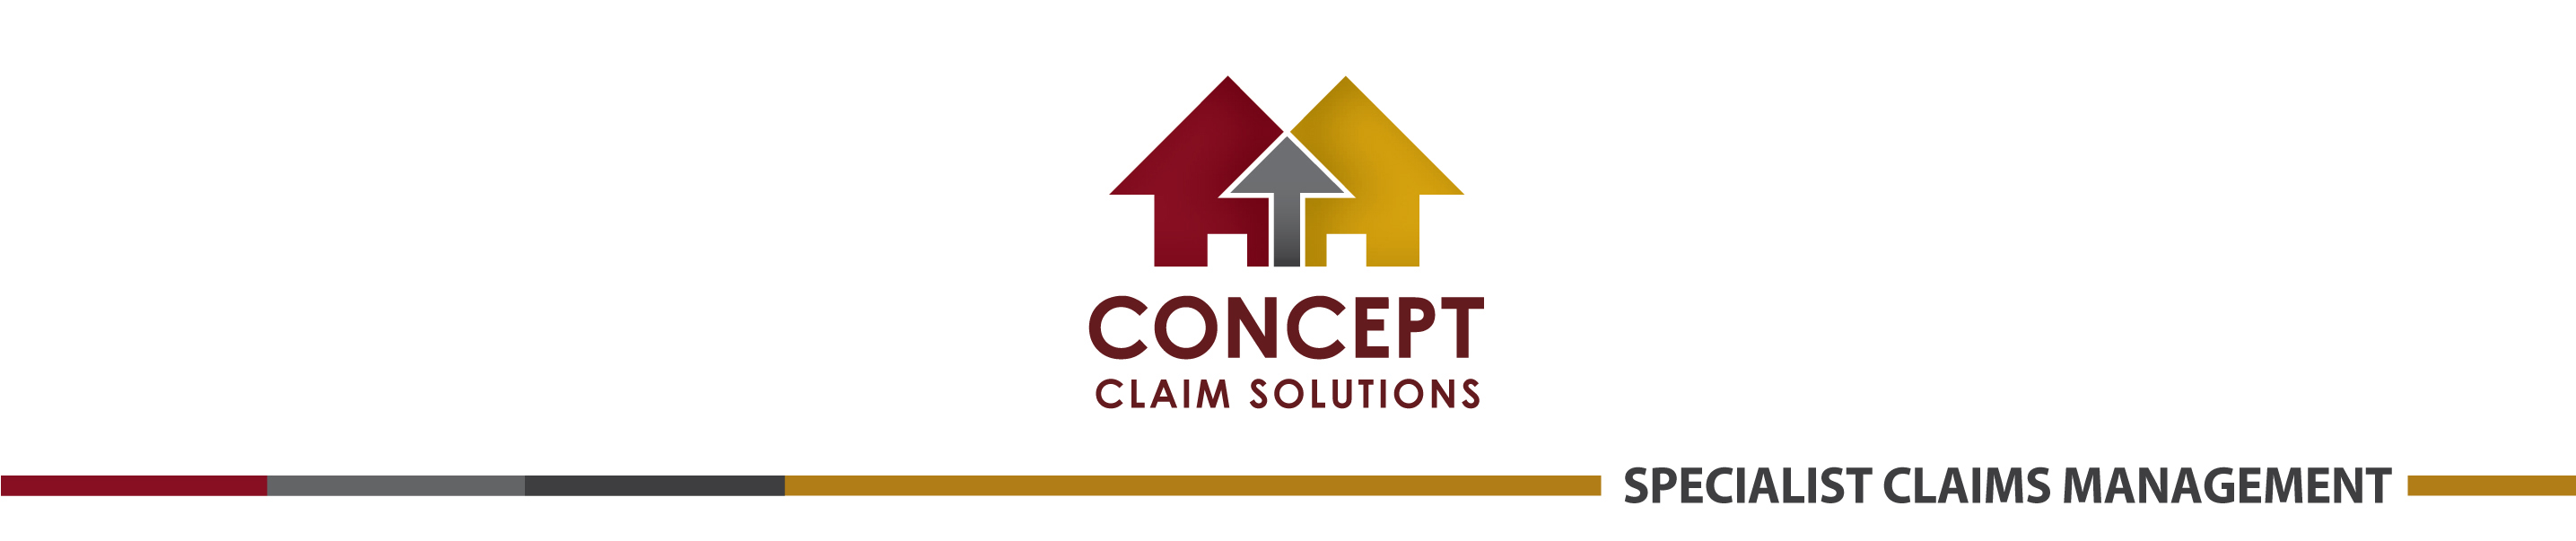 Concept Claim Solutions